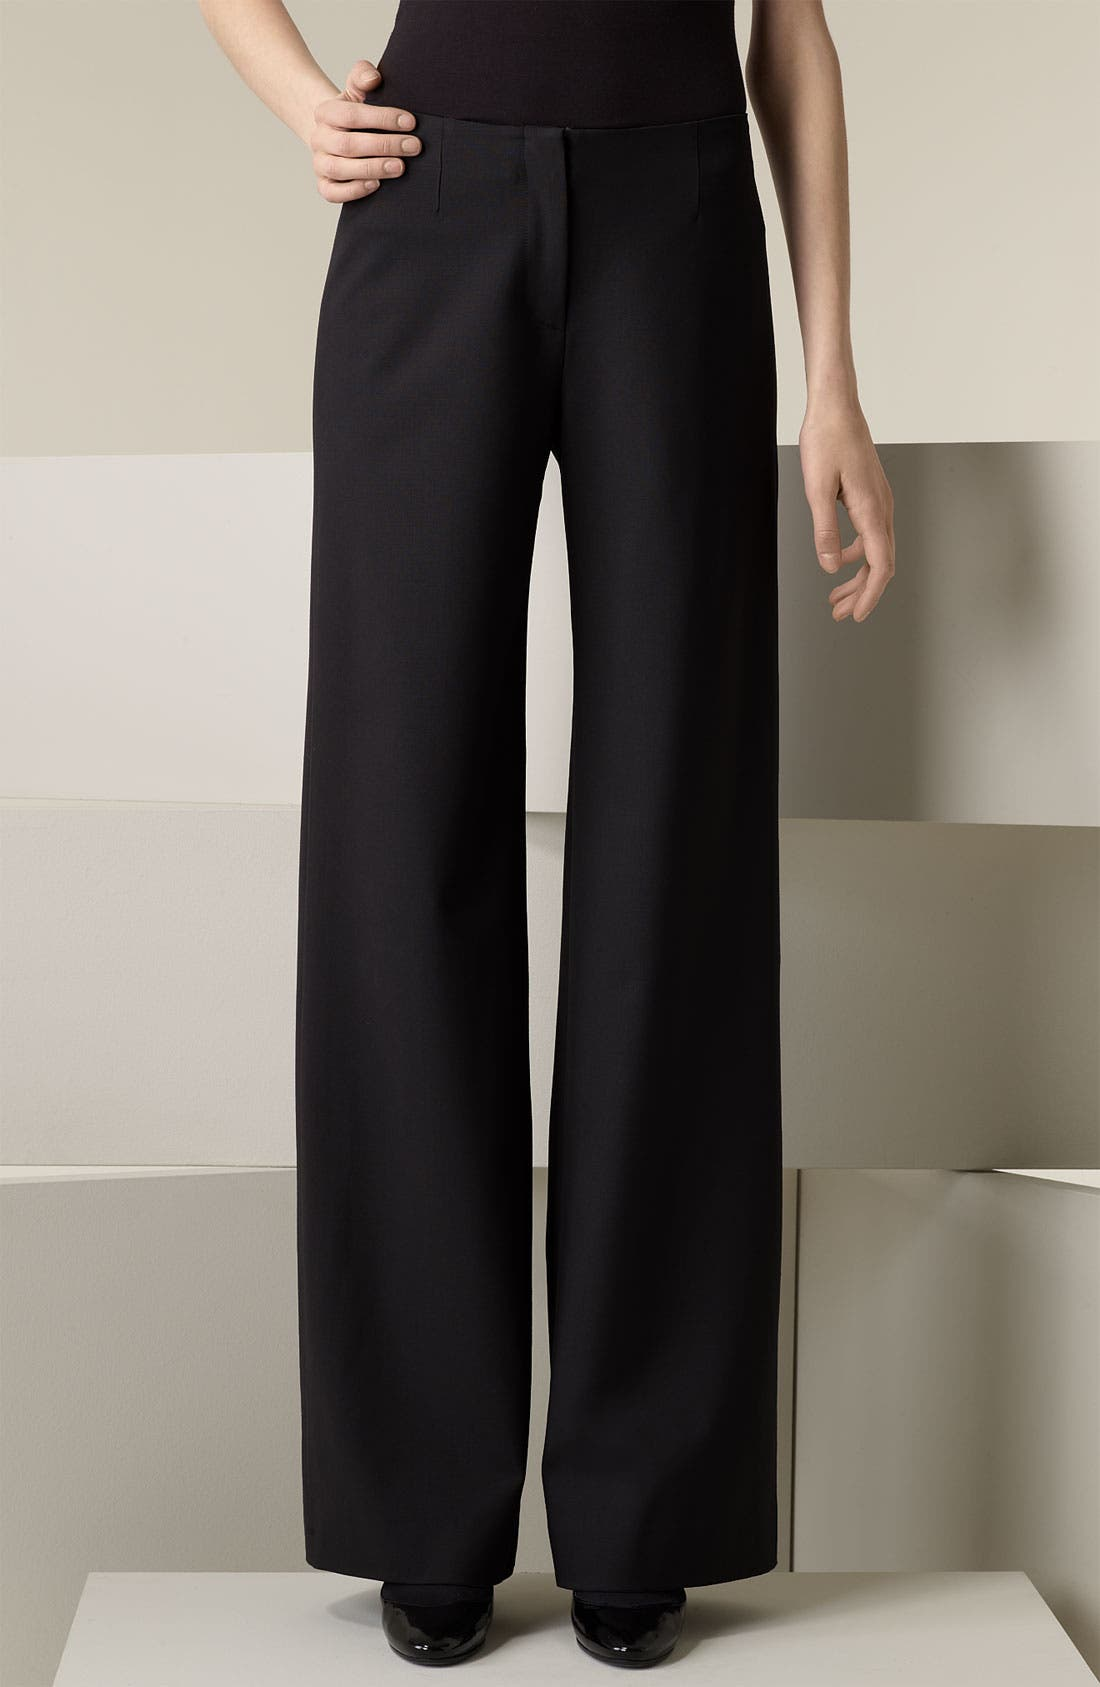 Alternate Image 1 Selected - Piazza Sempione 'Marilyn' Wide Leg Pants